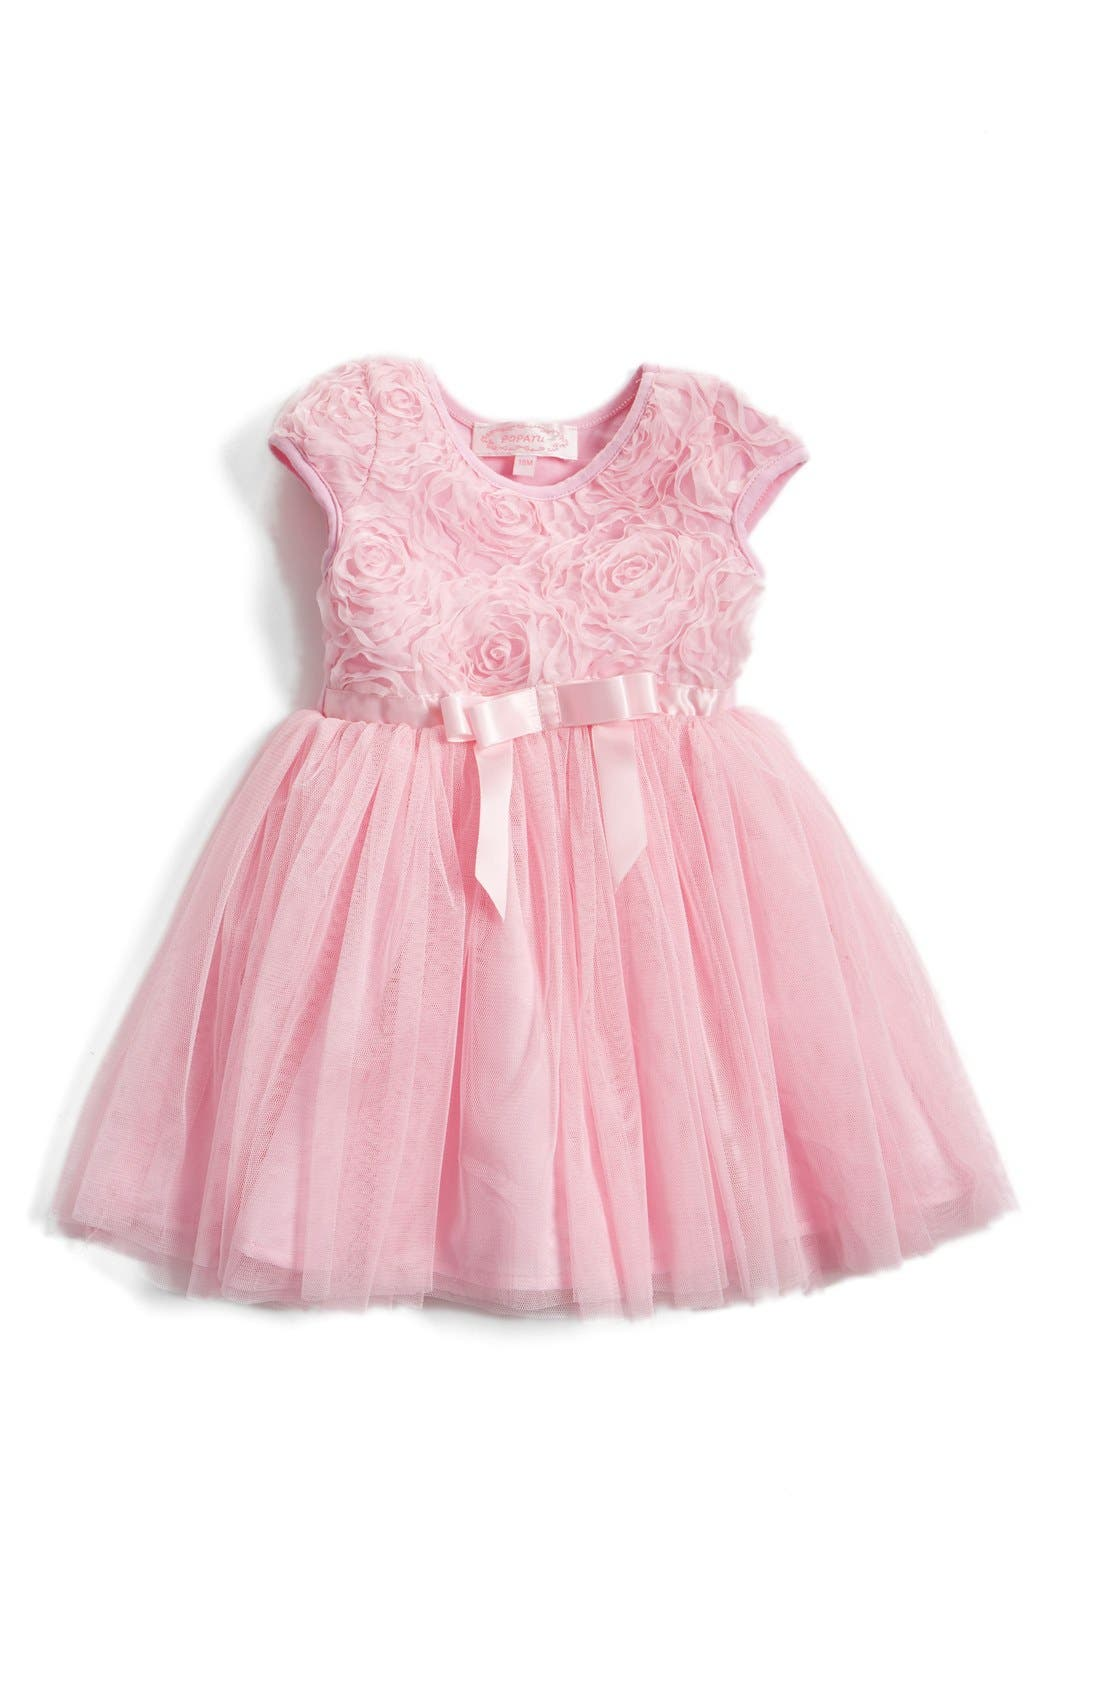 Alternate Image 1 Selected - Popatu Short Sleeve Tulle Dress (Baby Girls)